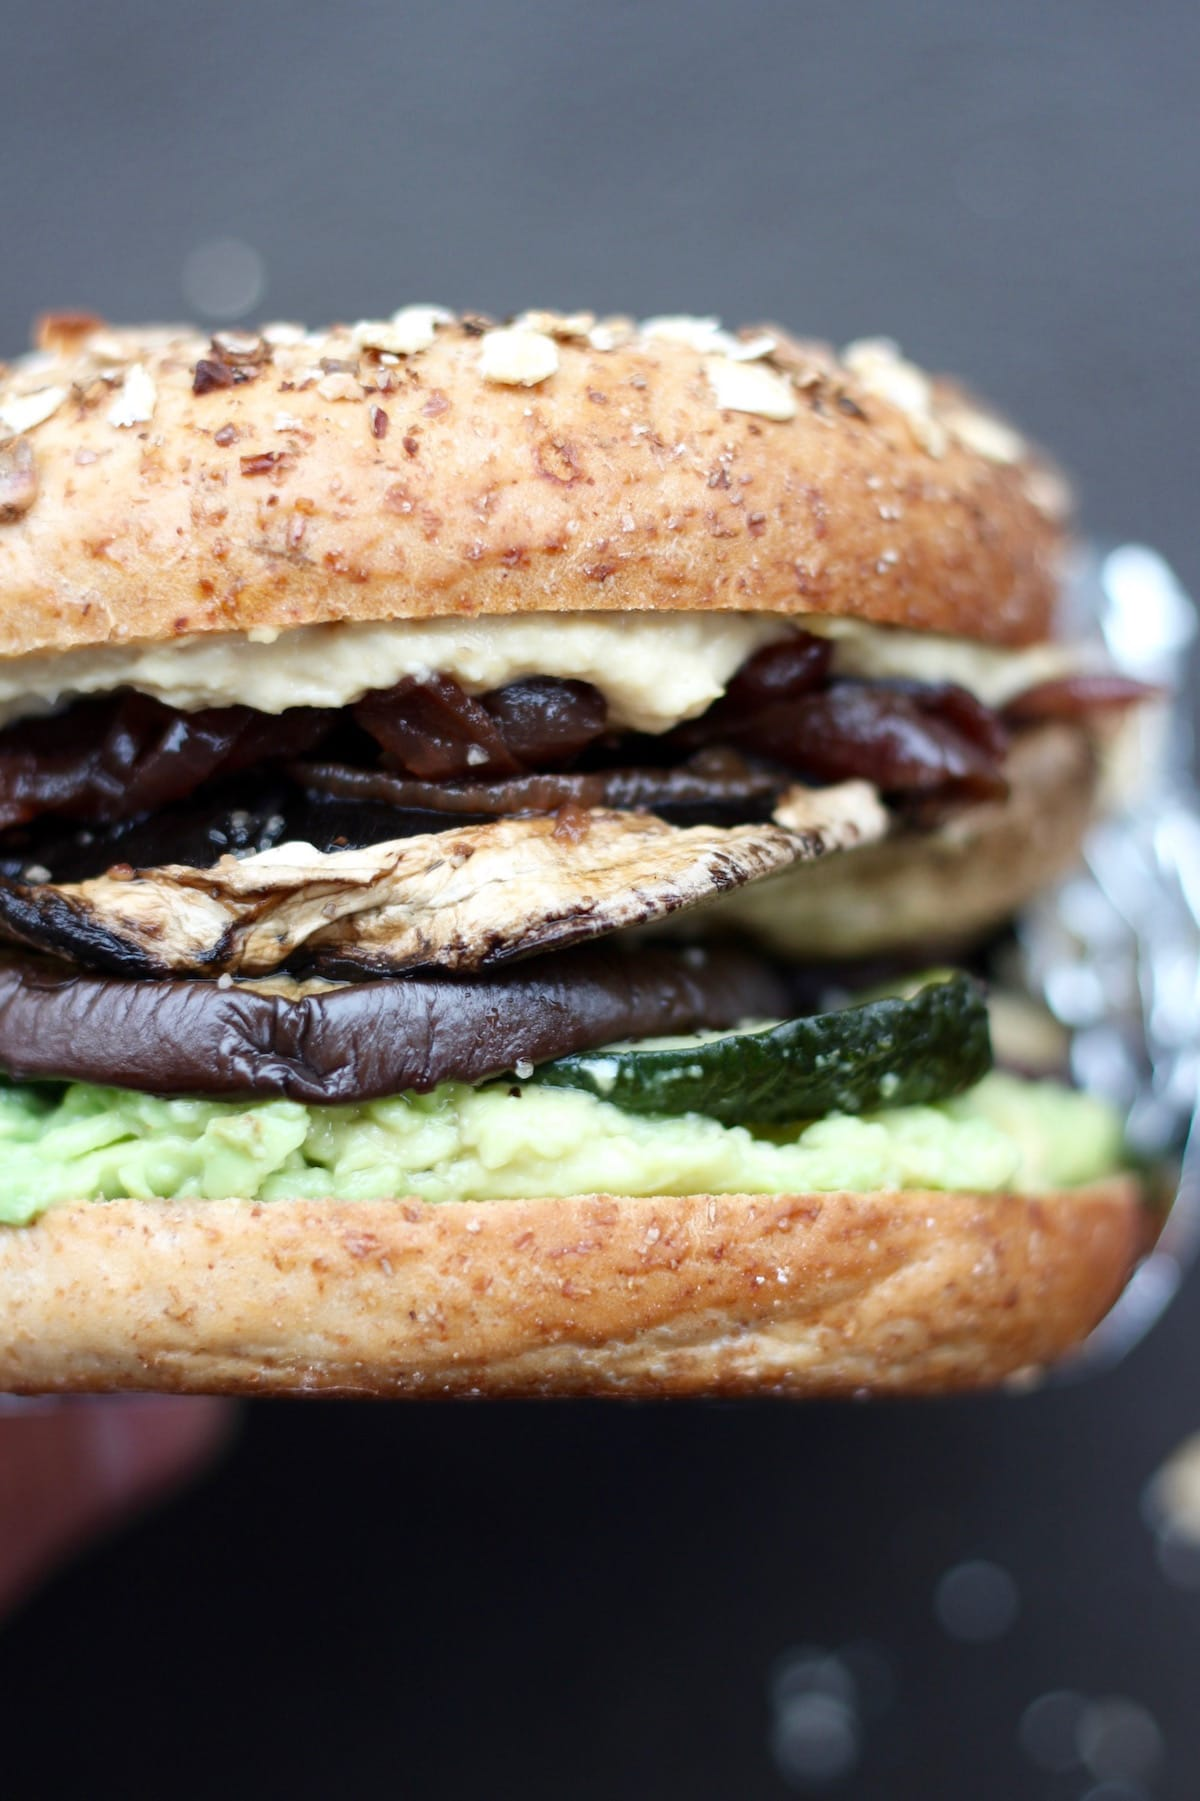 A loaded roasted veggie and hummus bagel sandwich